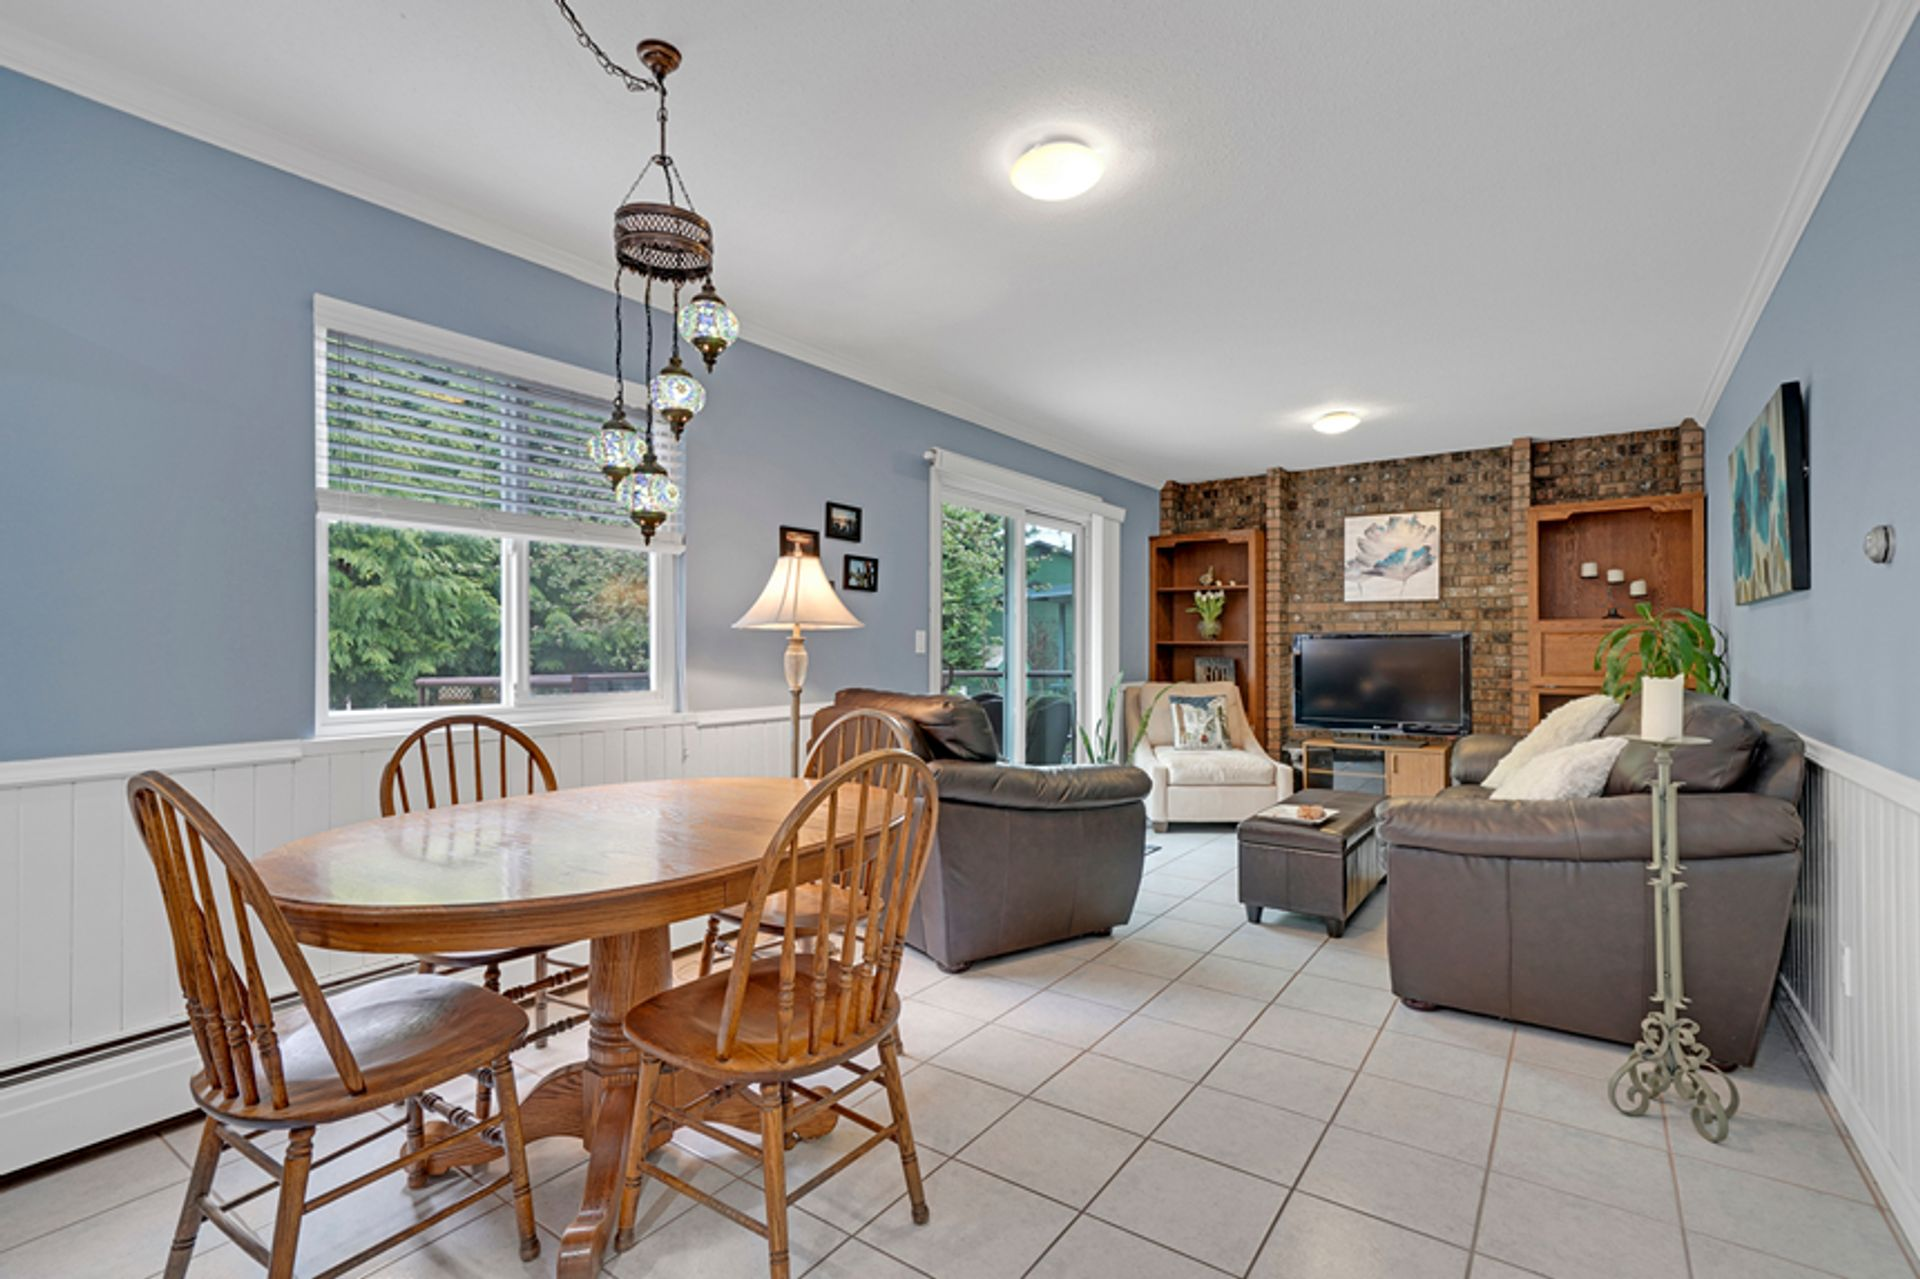 2g-main-eating-area-to-family-room-33 at 836 Irvine Street, Meadow Brook, Coquitlam